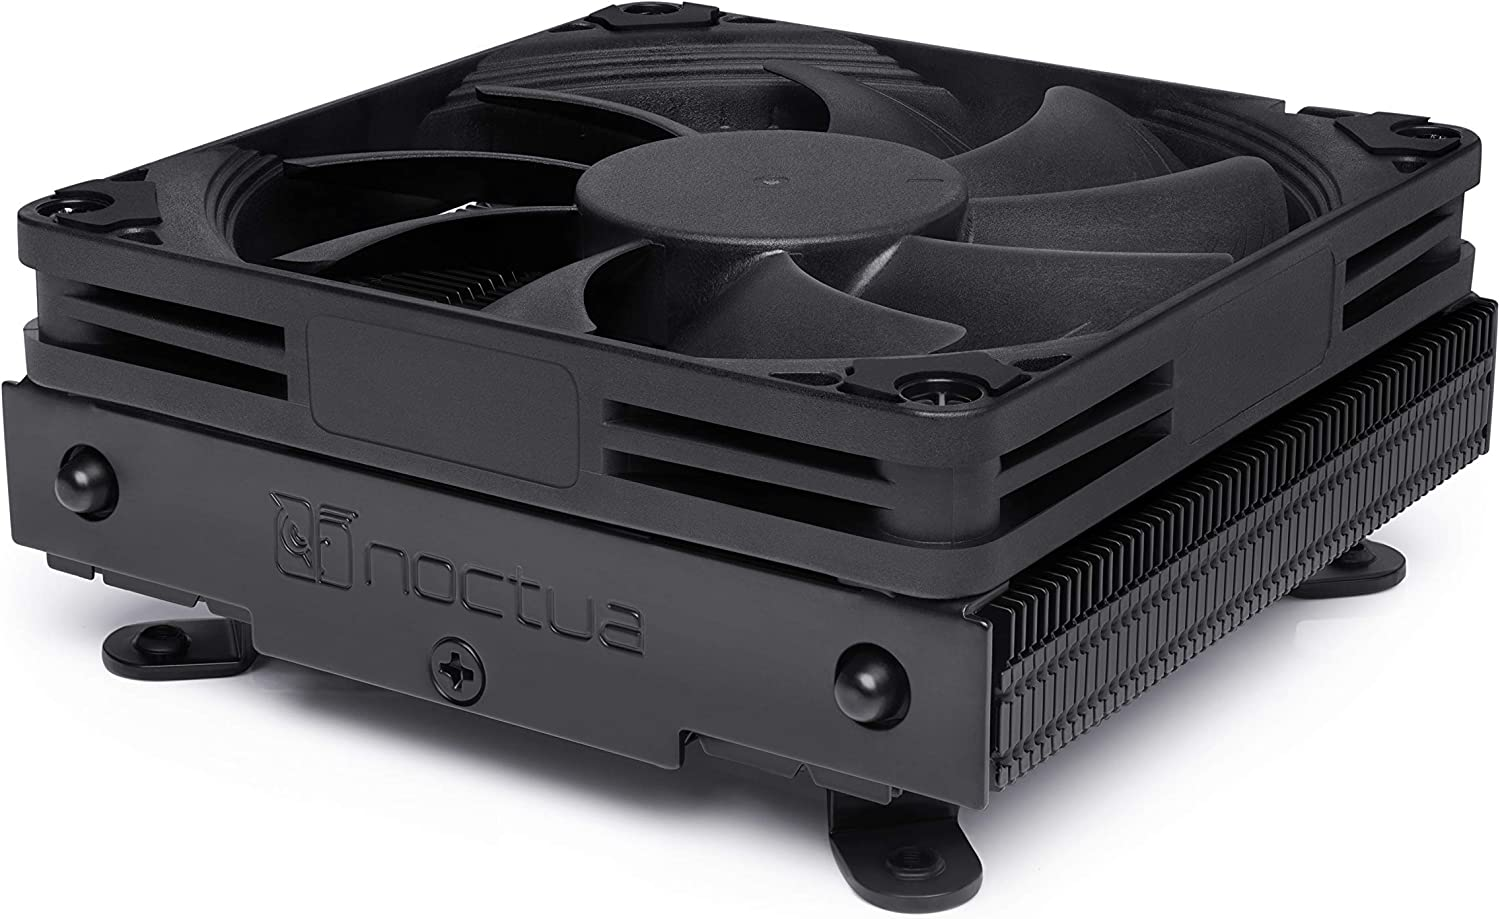 Noctua NH-L9i chromax.Black, Low-Profile CPU Cooler for Intel LGA115x (Black)